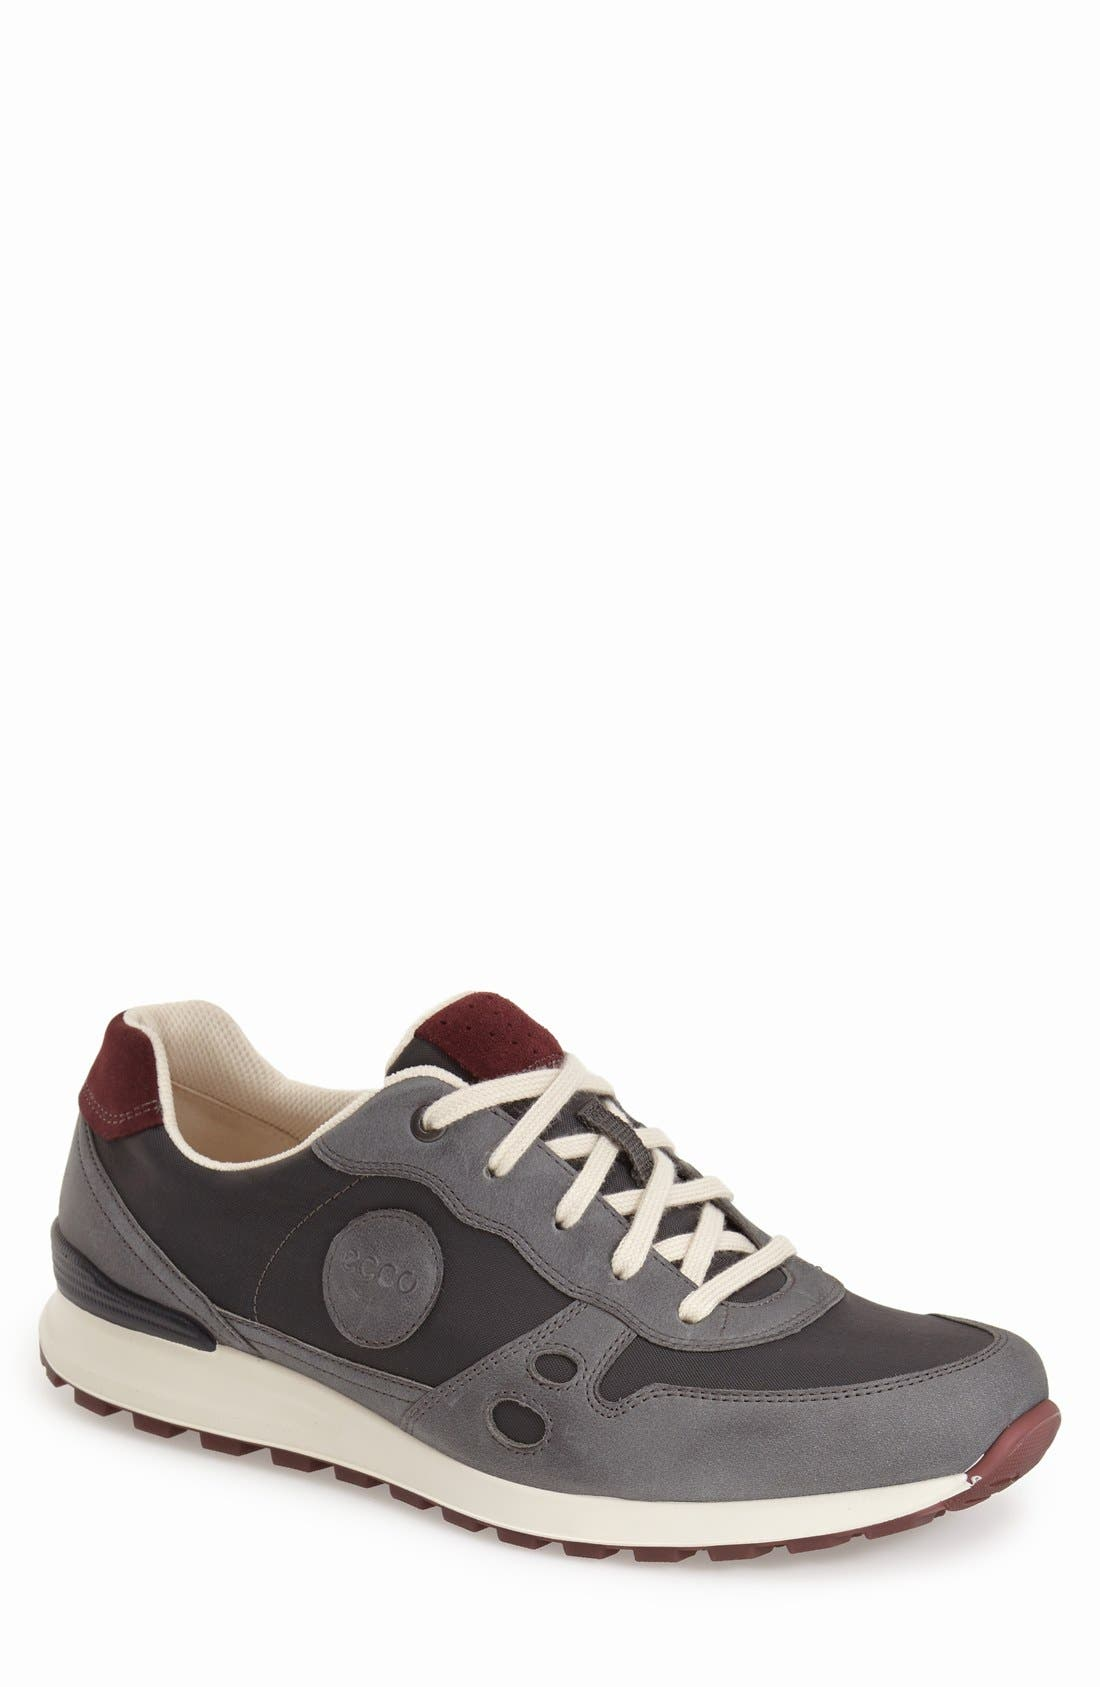 Main Image - ECCO 'CS14' Sneaker (Men)